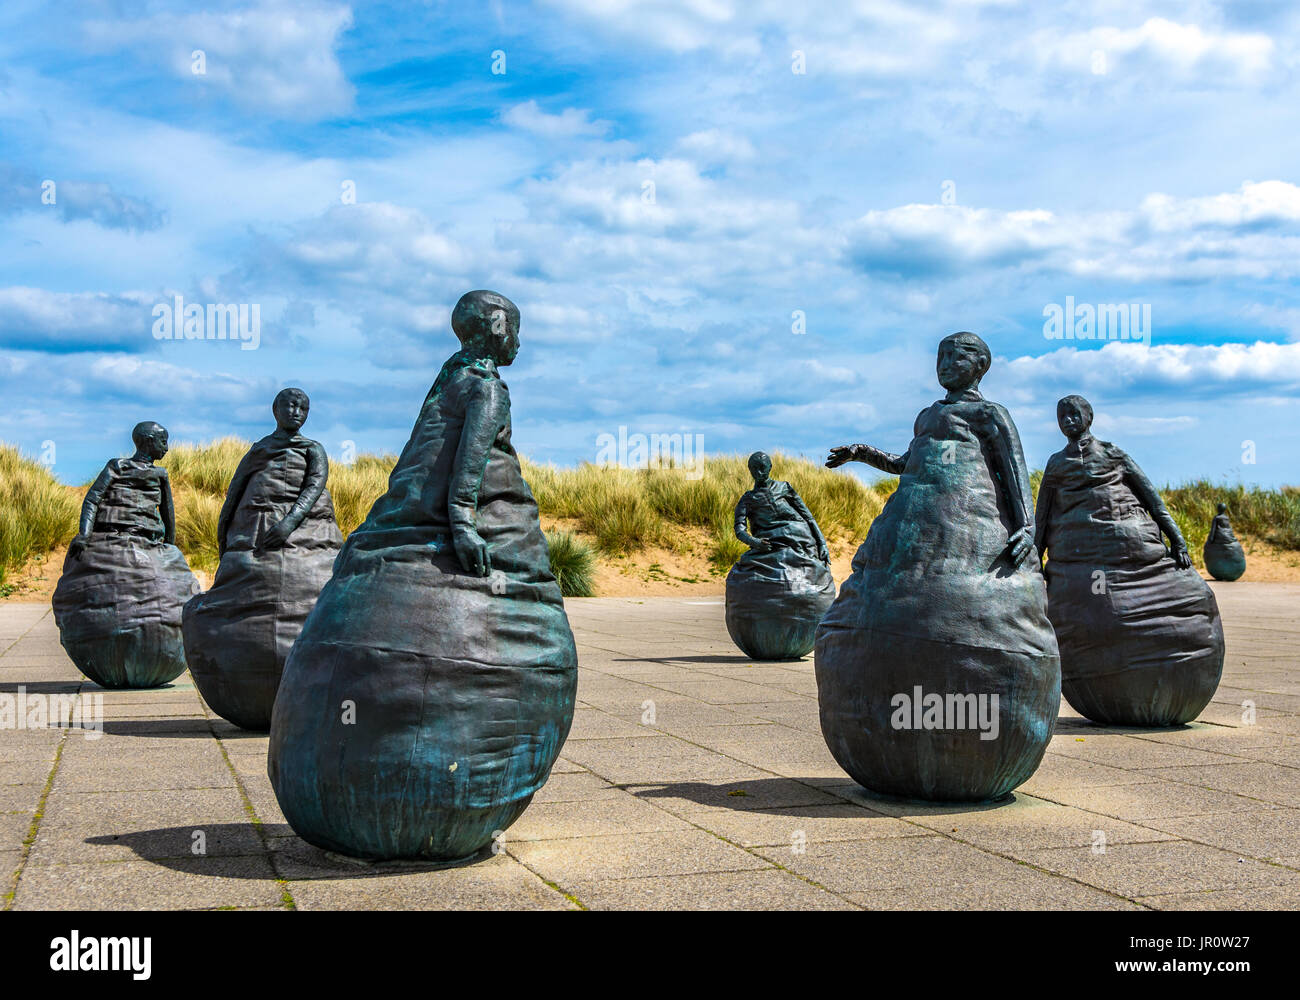 sculptors by juan munoz located at the mouth of the river Tyne at South Shields - Stock Image